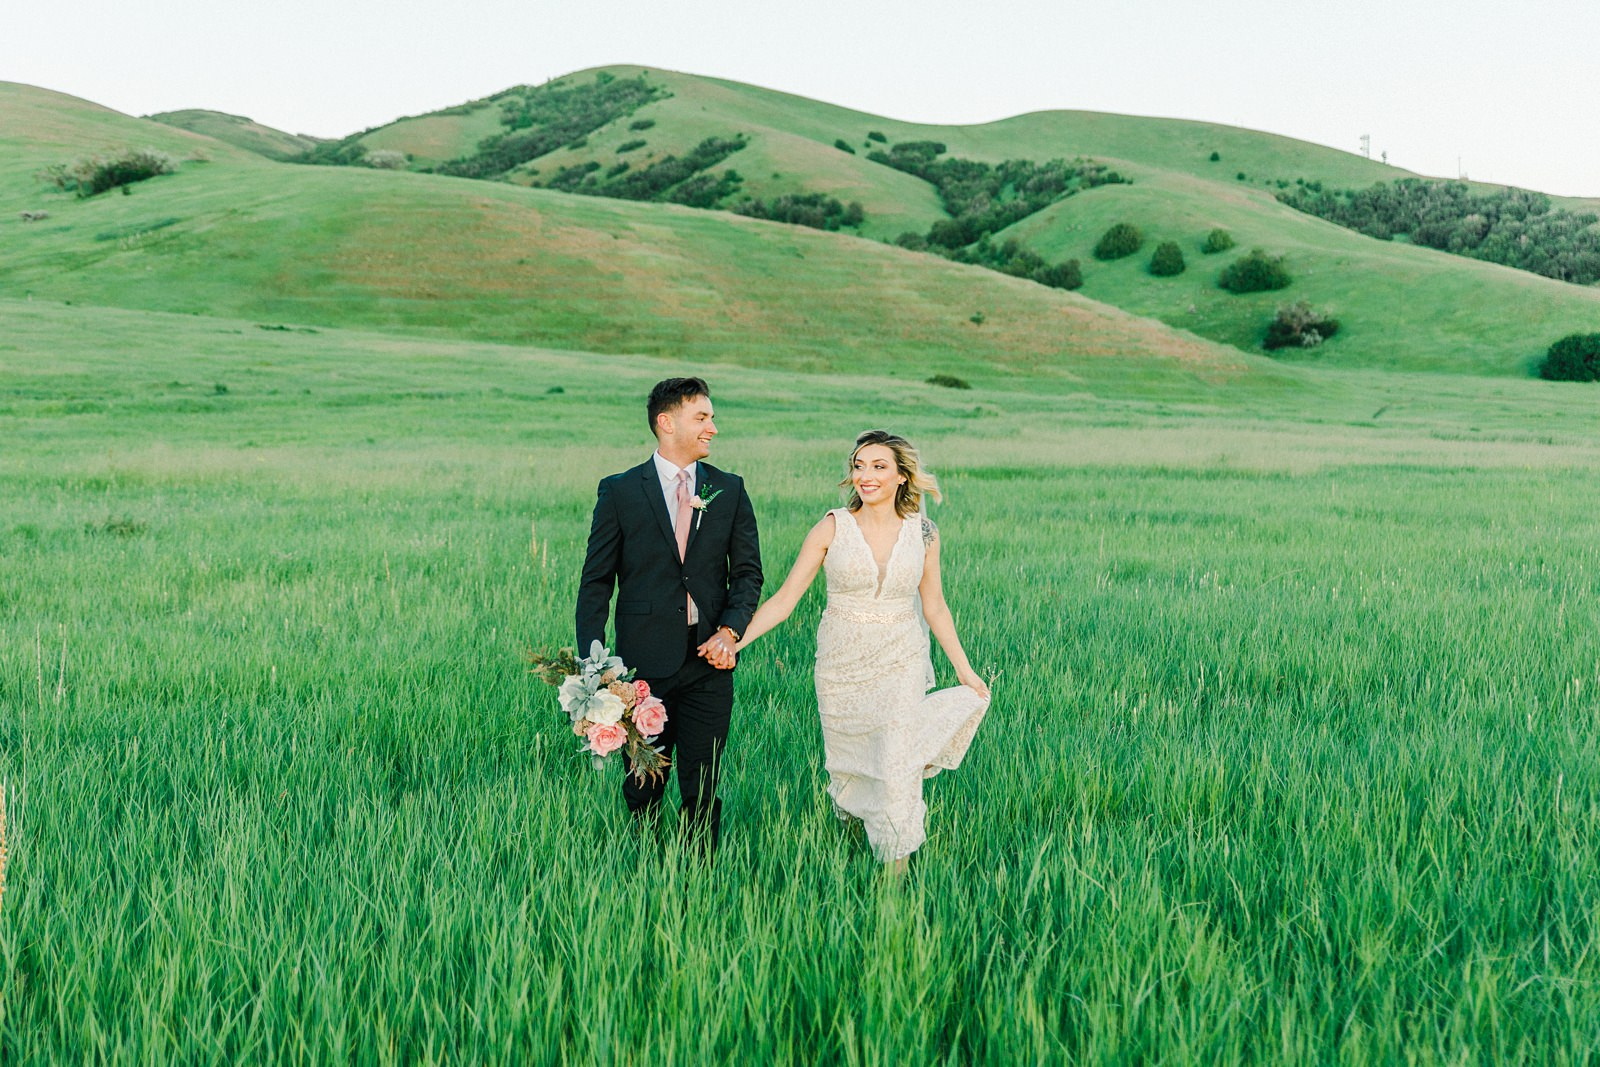 Salt Lake City Utah Bridal Wedding Photography, Tunnel Springs Park, bride and groom in open green field